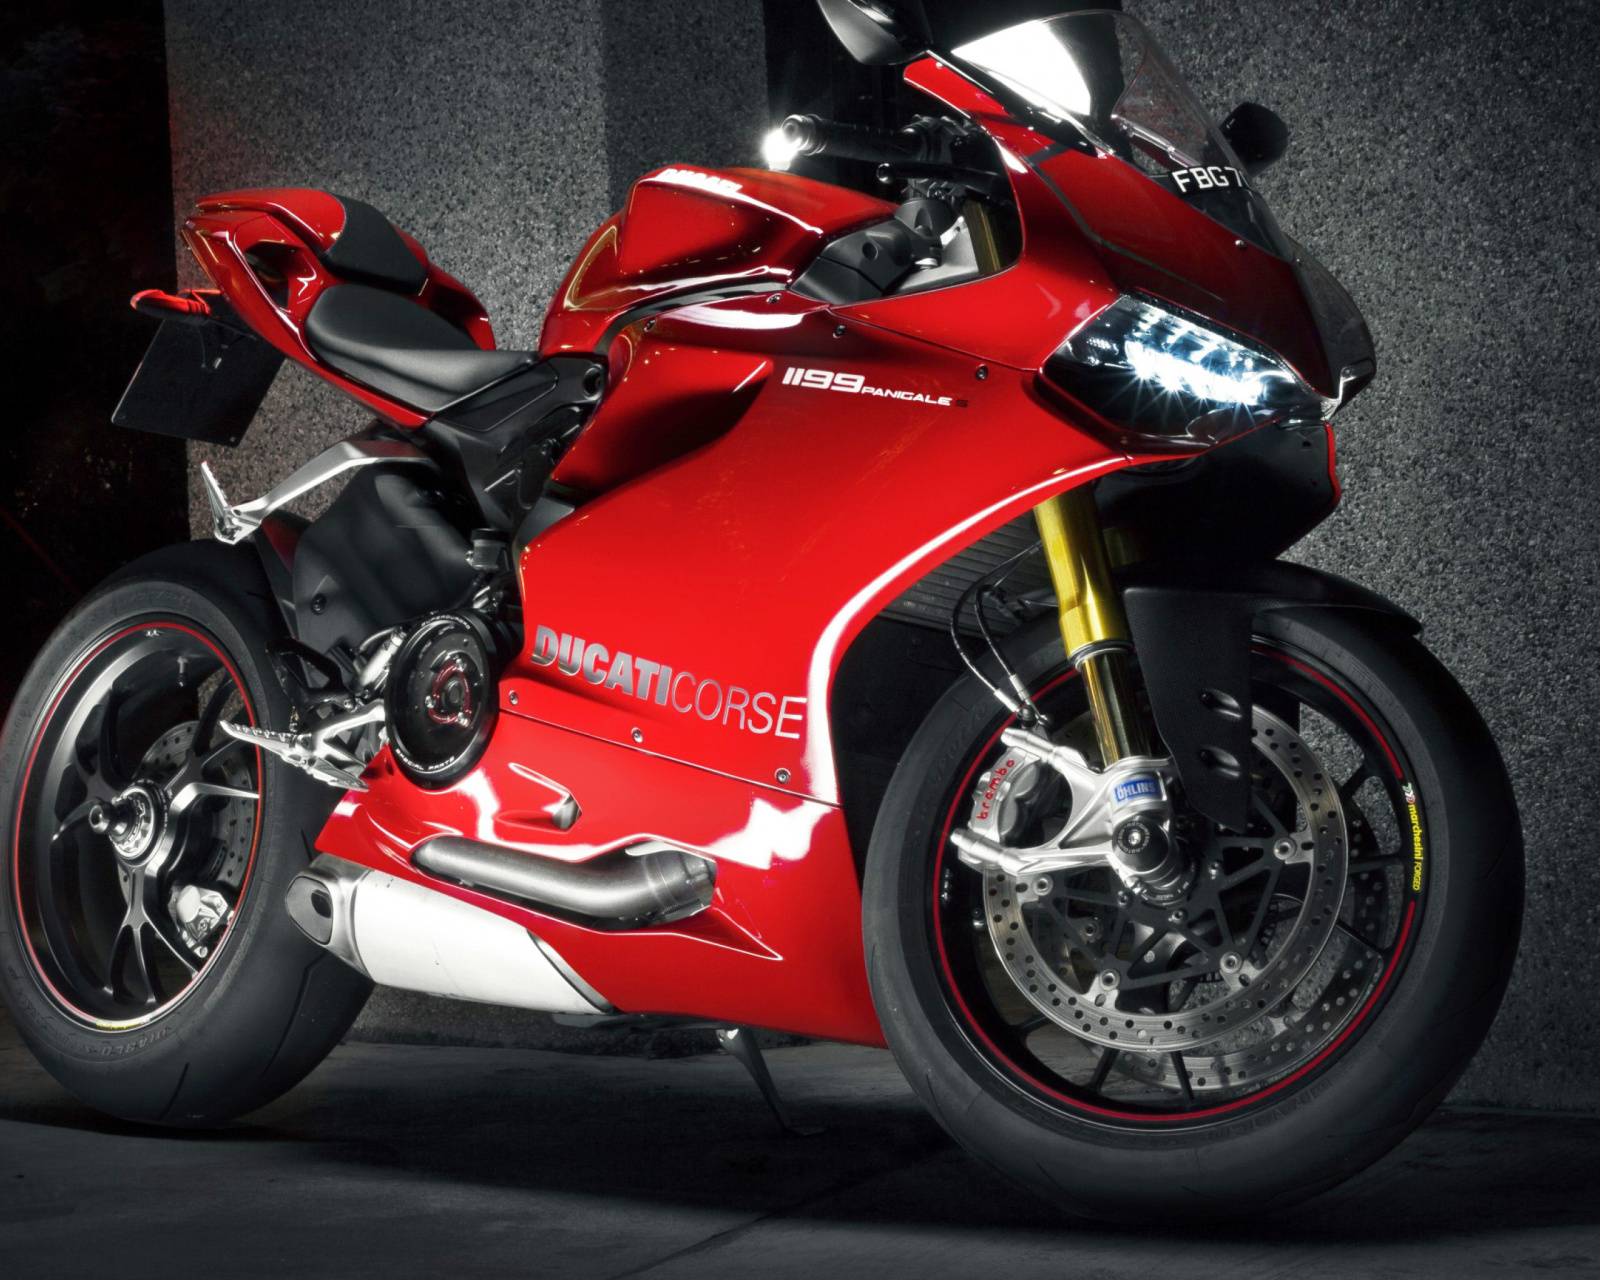 Das Ducati 1199 Wallpaper 1600x1280